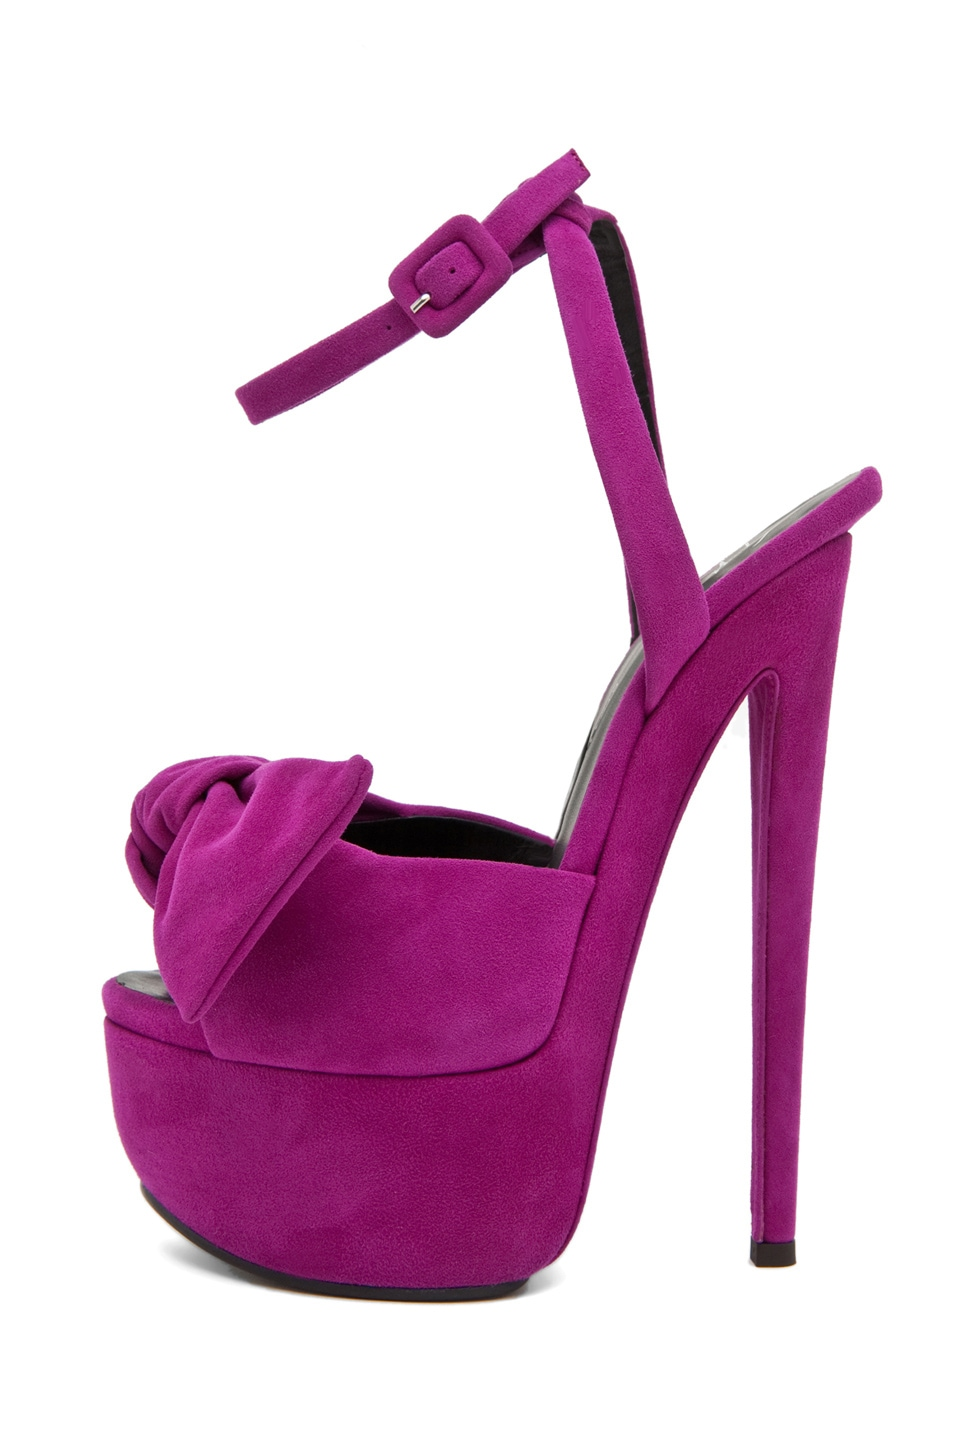 Image 1 of Giuseppe Zanotti Platform Heel with Bow in Fuschia